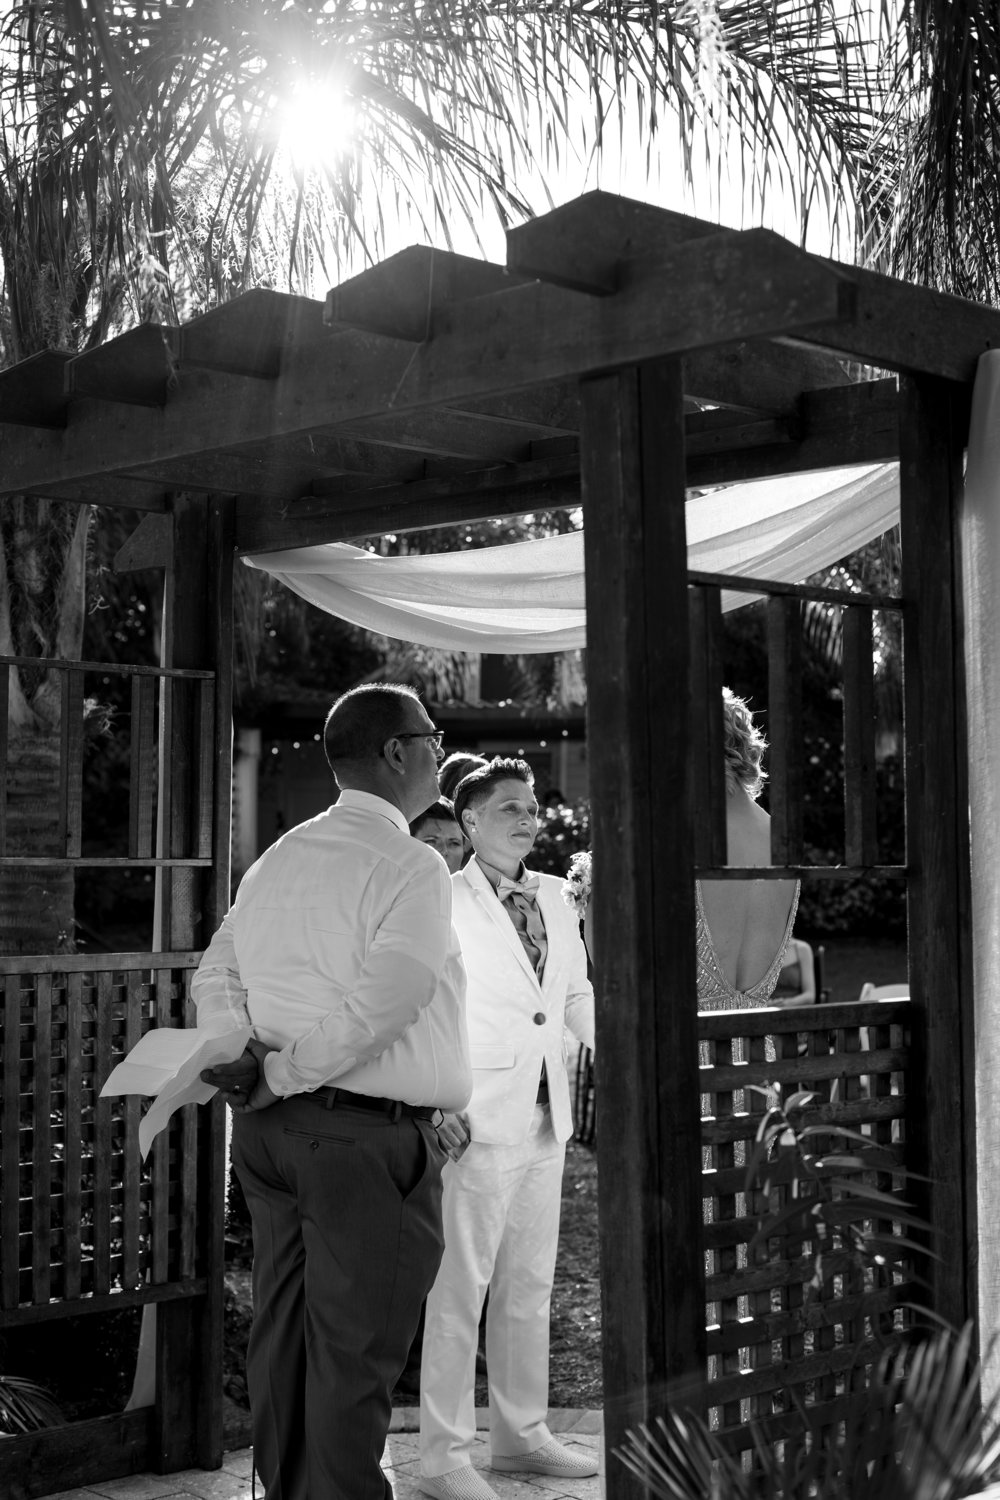 100916_hastingswedding_13 copy.jpg